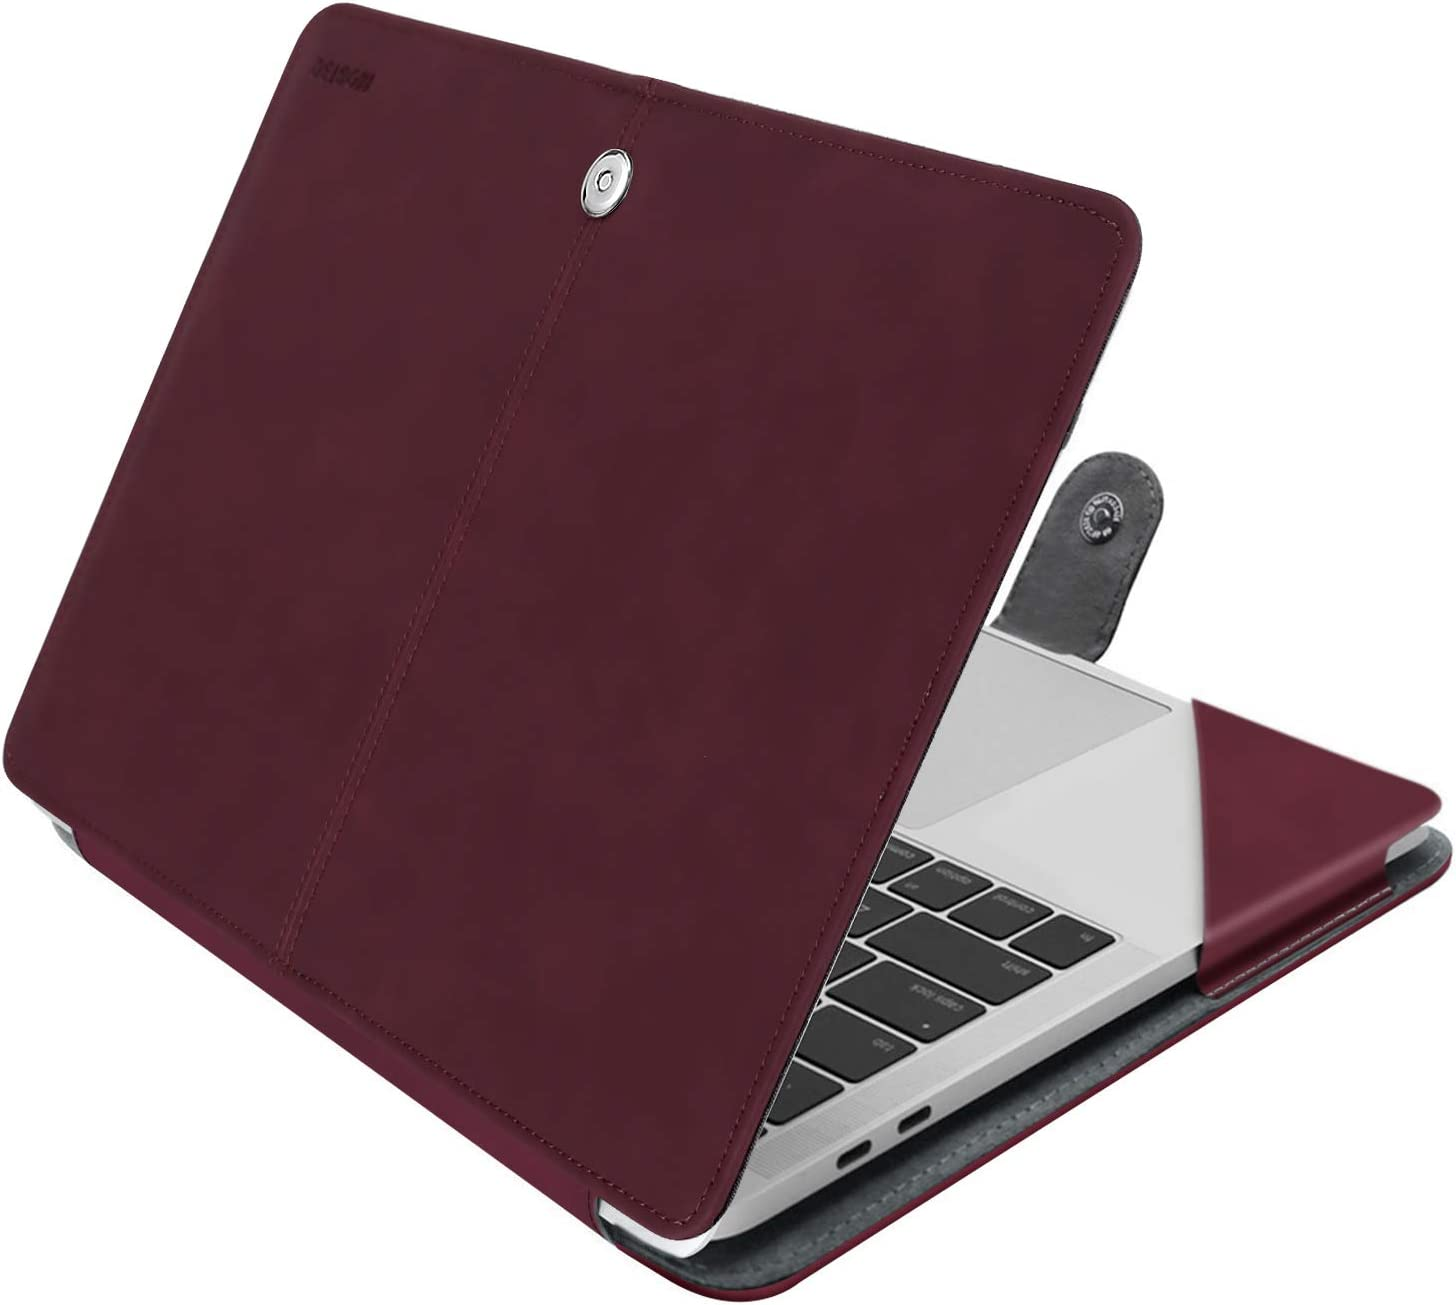 MOSISO MacBook Air 13 inch Case, Premium PU Leather Case Book Folio Protective Stand Cover Sleeve Compatible with MacBook Air 13 inch A1466 / A1369 (Older Version Release 2010-2017), Claret Red